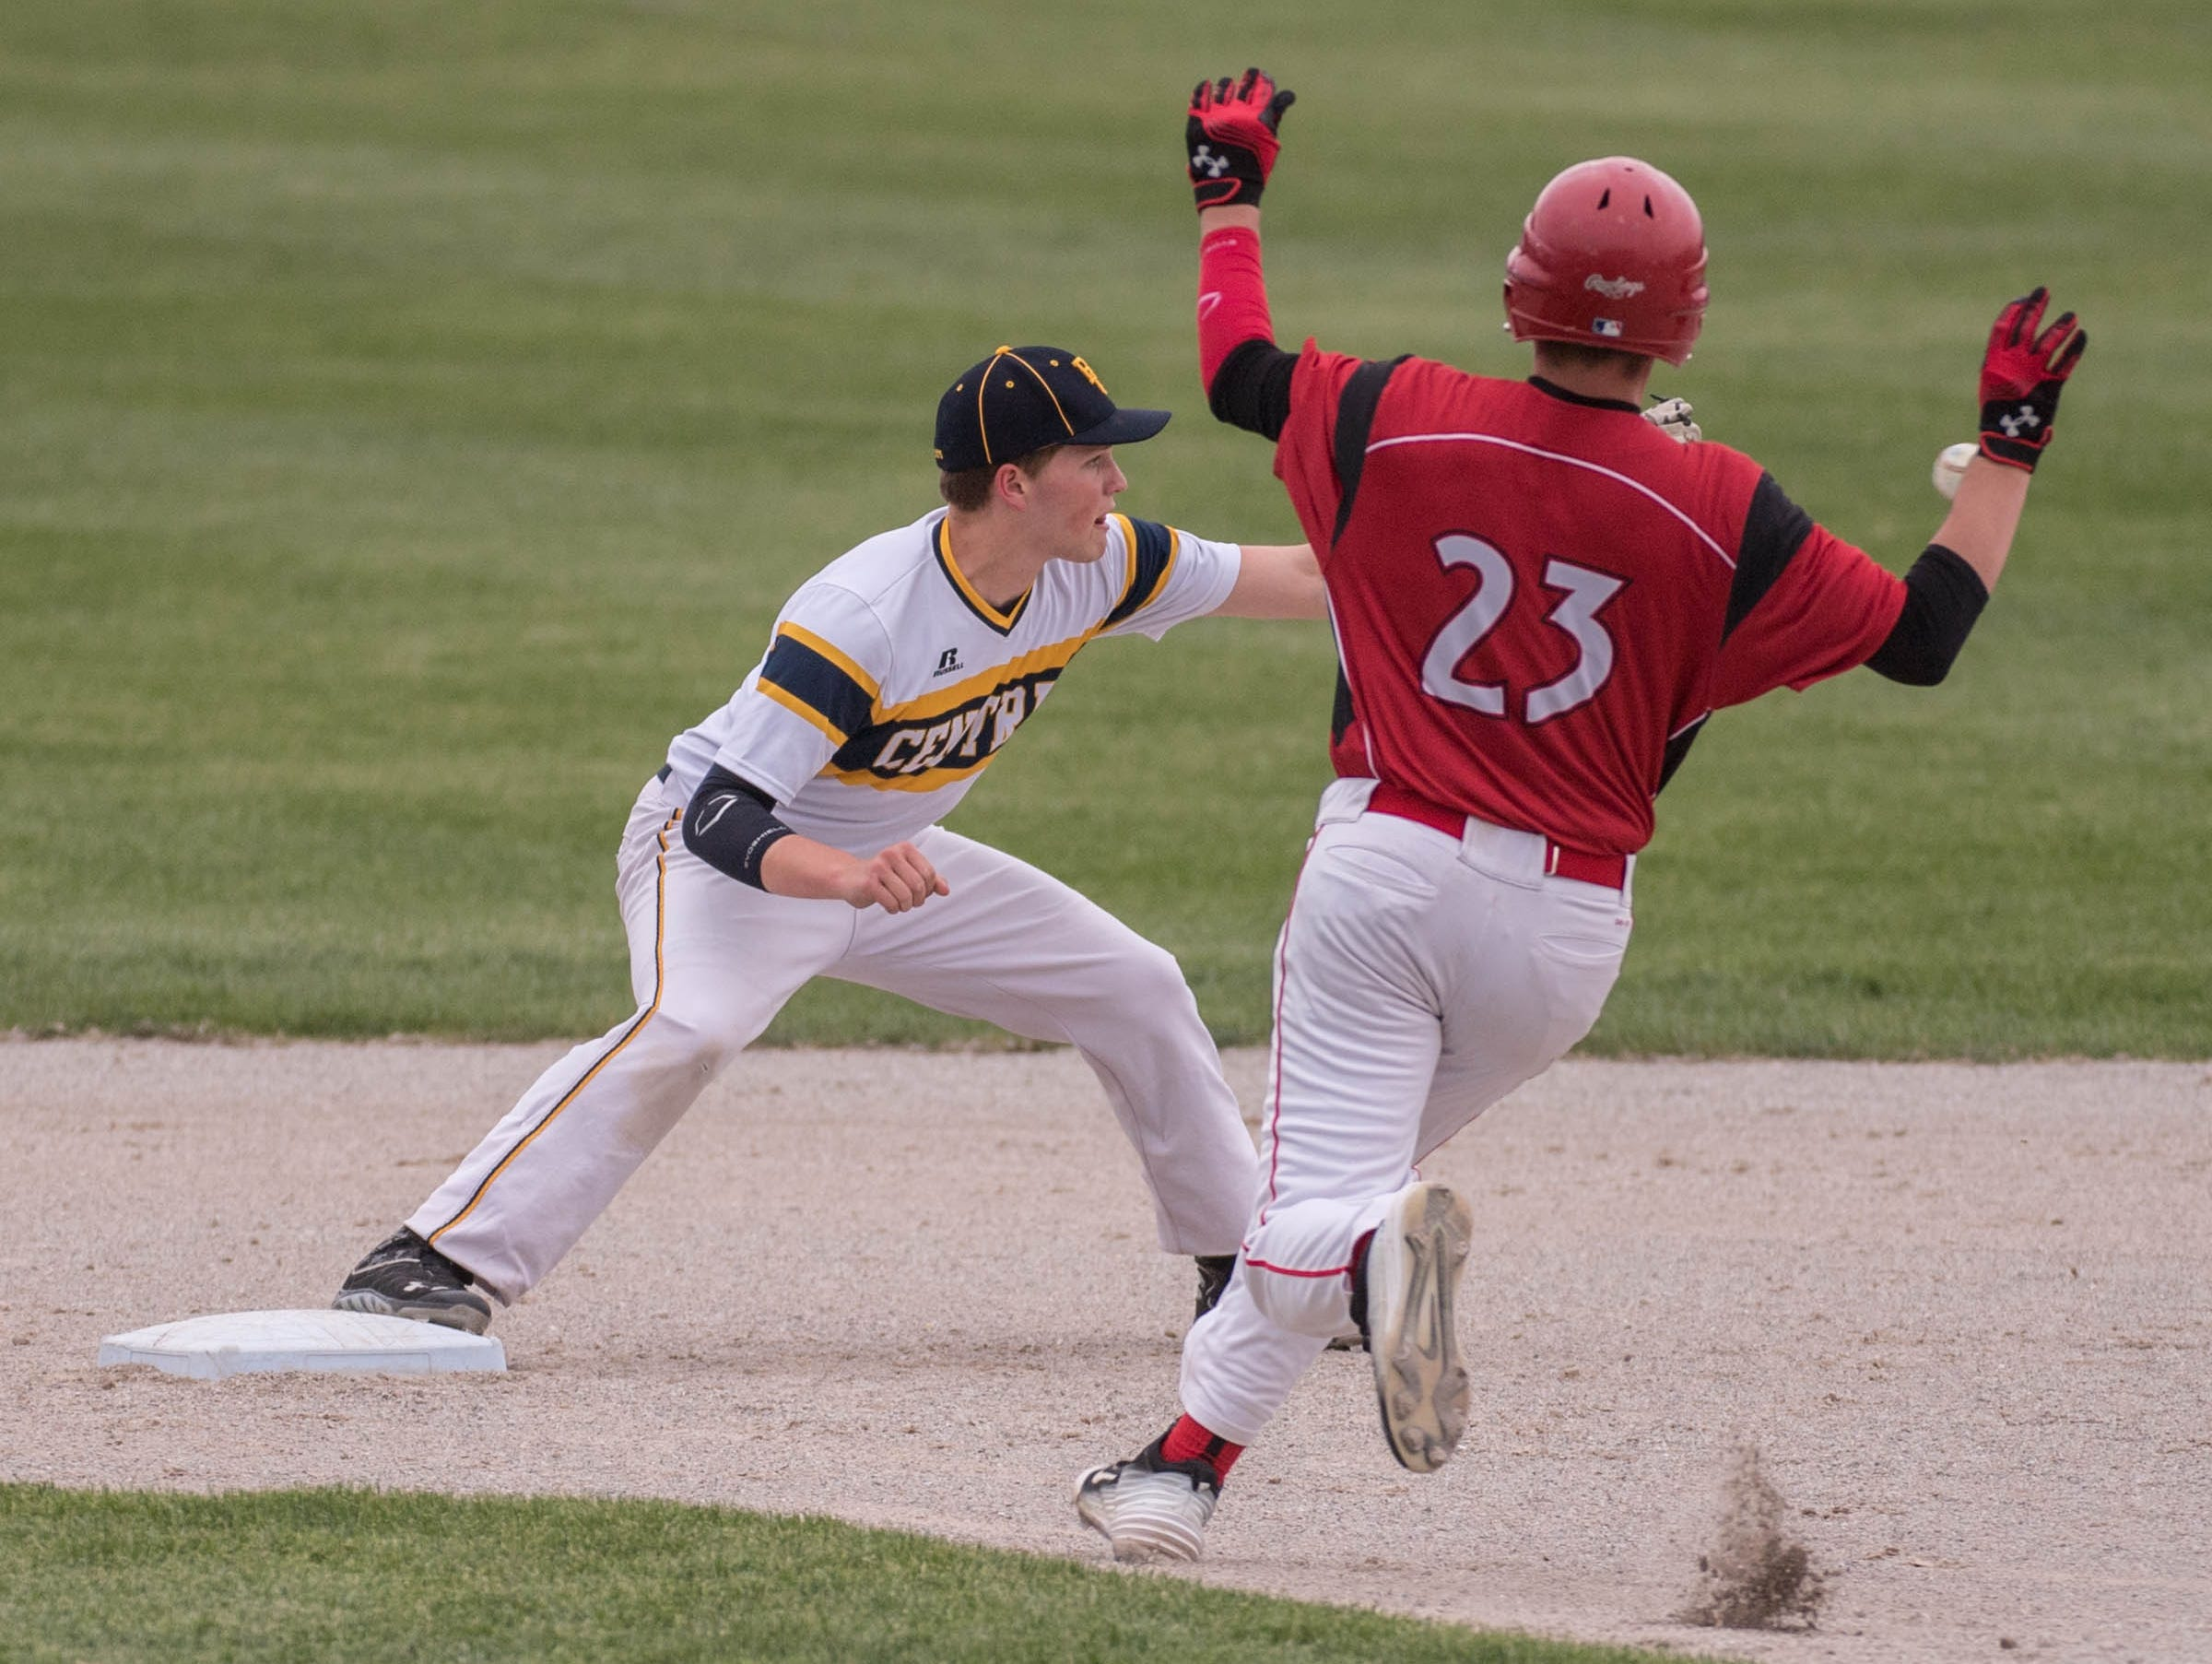 St. Philip's Zach Nelson makes it to second during action earlier this season in a game against Battle Creek Central.